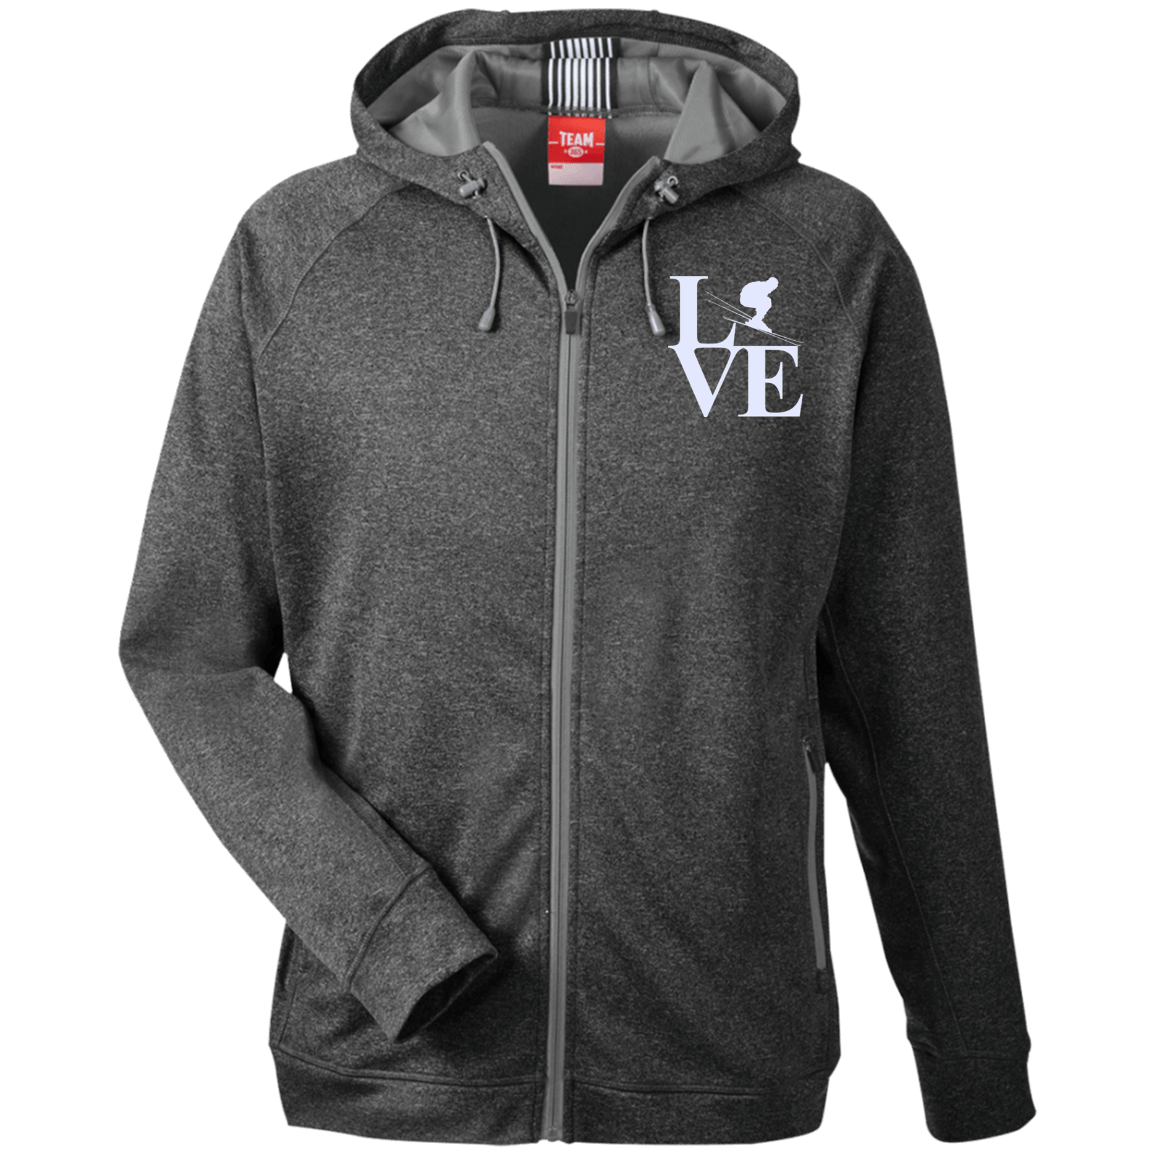 Love Ski Men's Zip Jacket - Powderaddicts